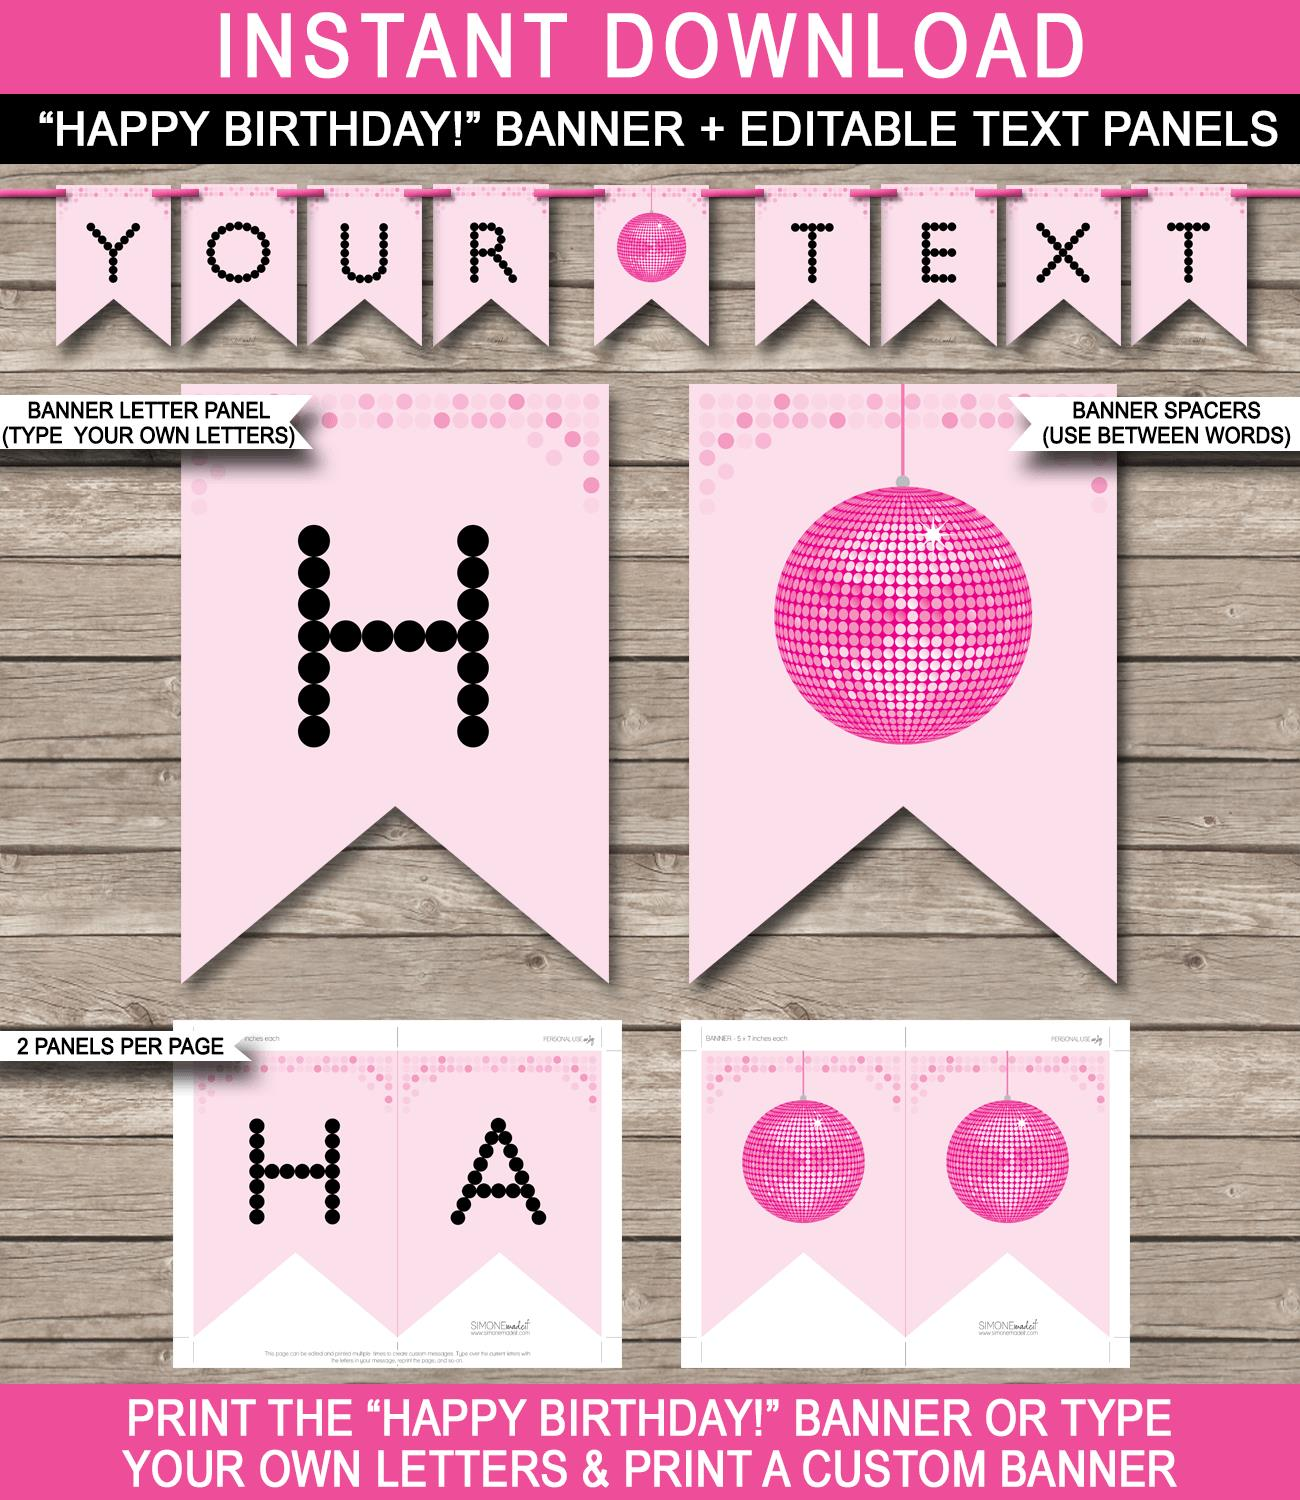 happy birthday poster template ; Dance-Disco-Banners-Editable-And-Printable-Templates-Pink-G